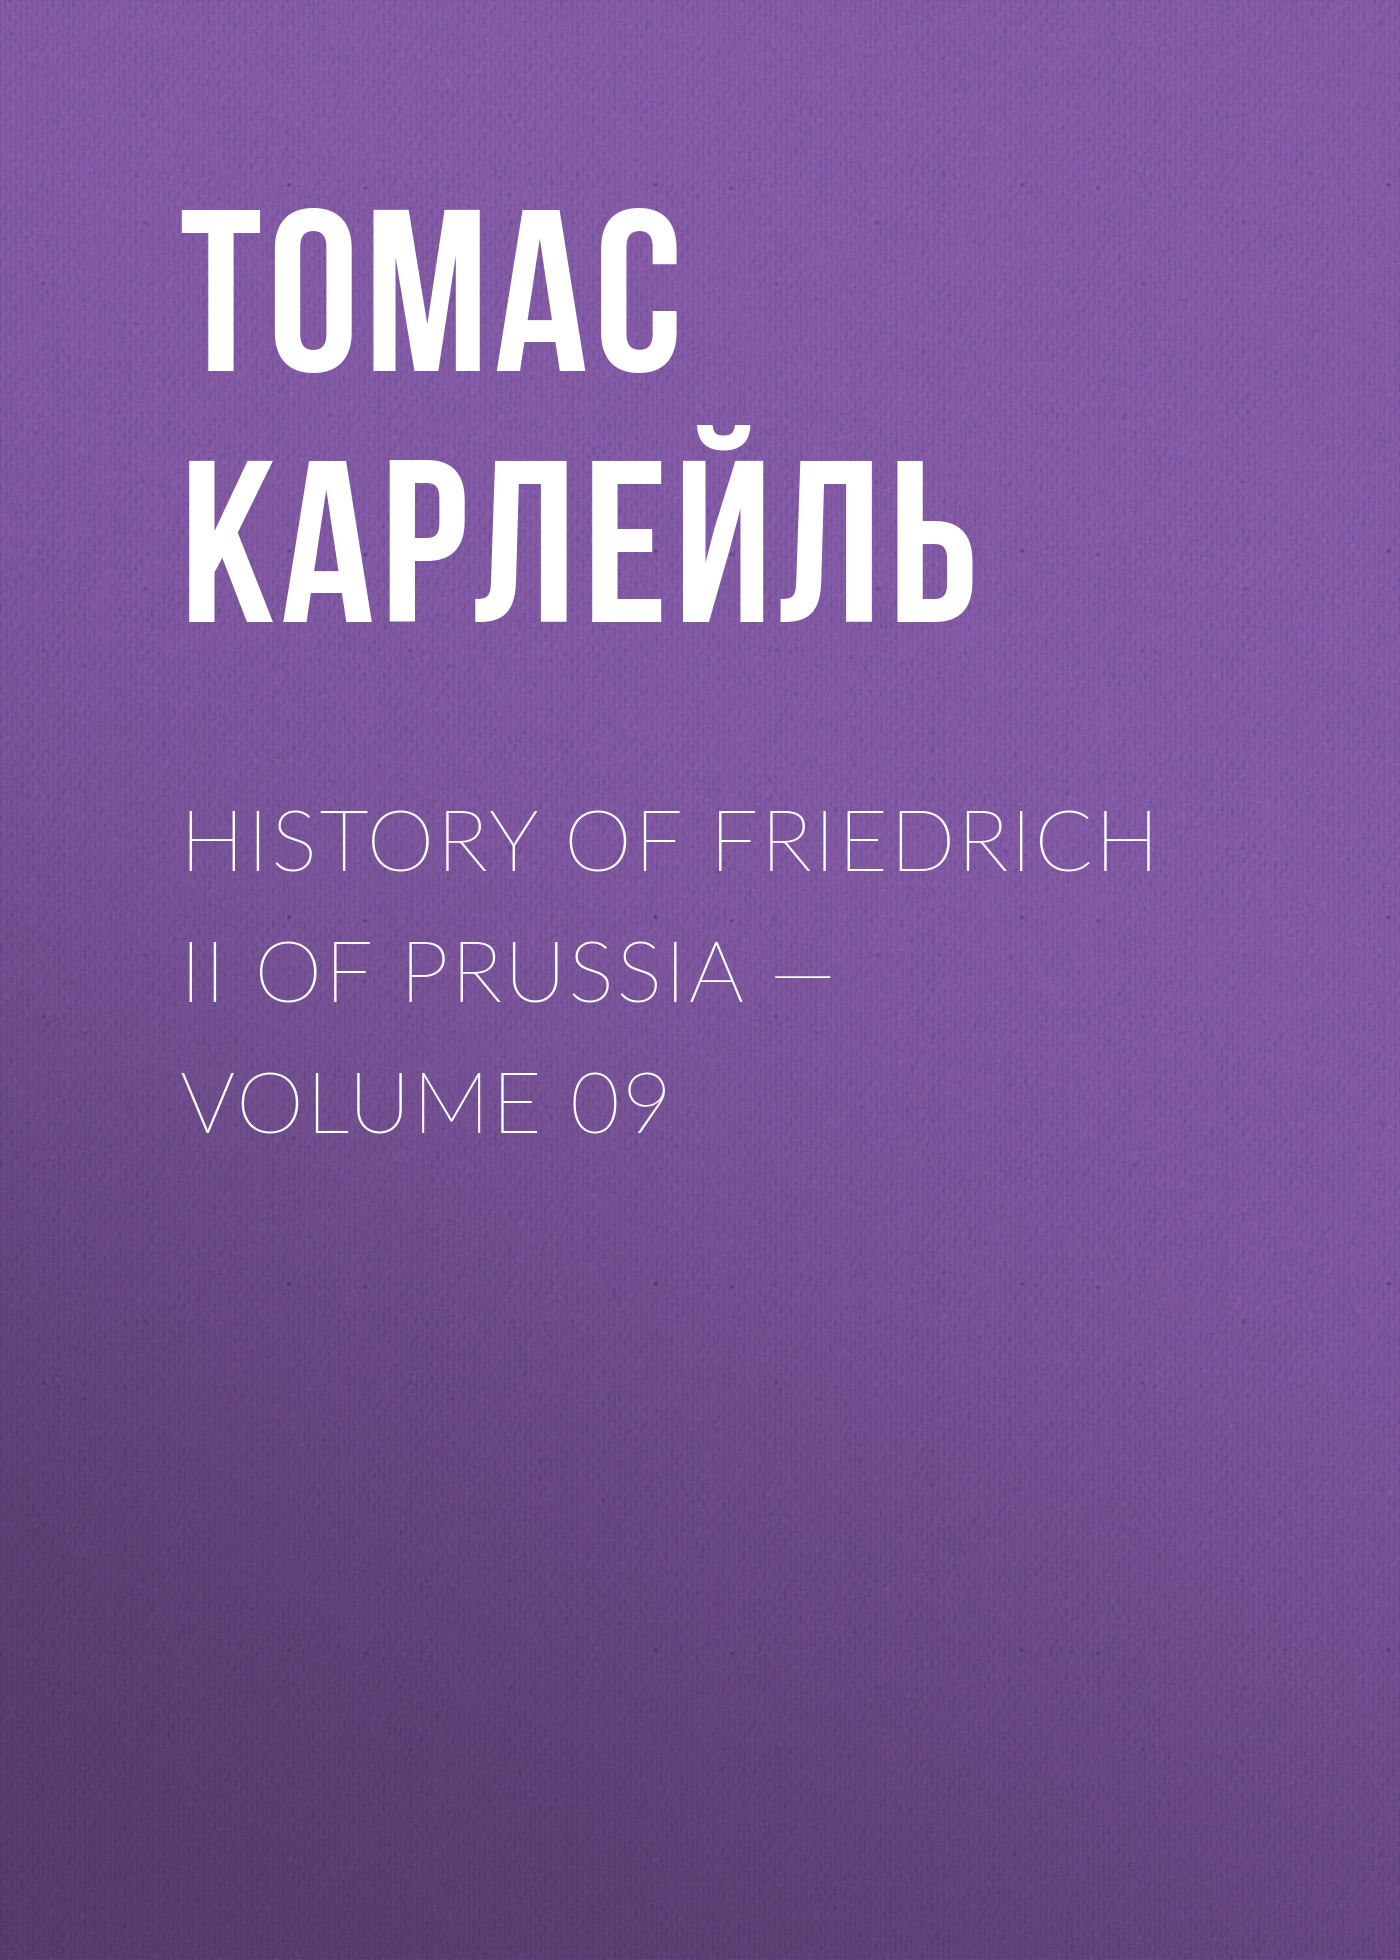 Томас Карлейль History of Friedrich II of Prussia — Volume 09 томас карлейль history of friedrich ii of prussia volume 10